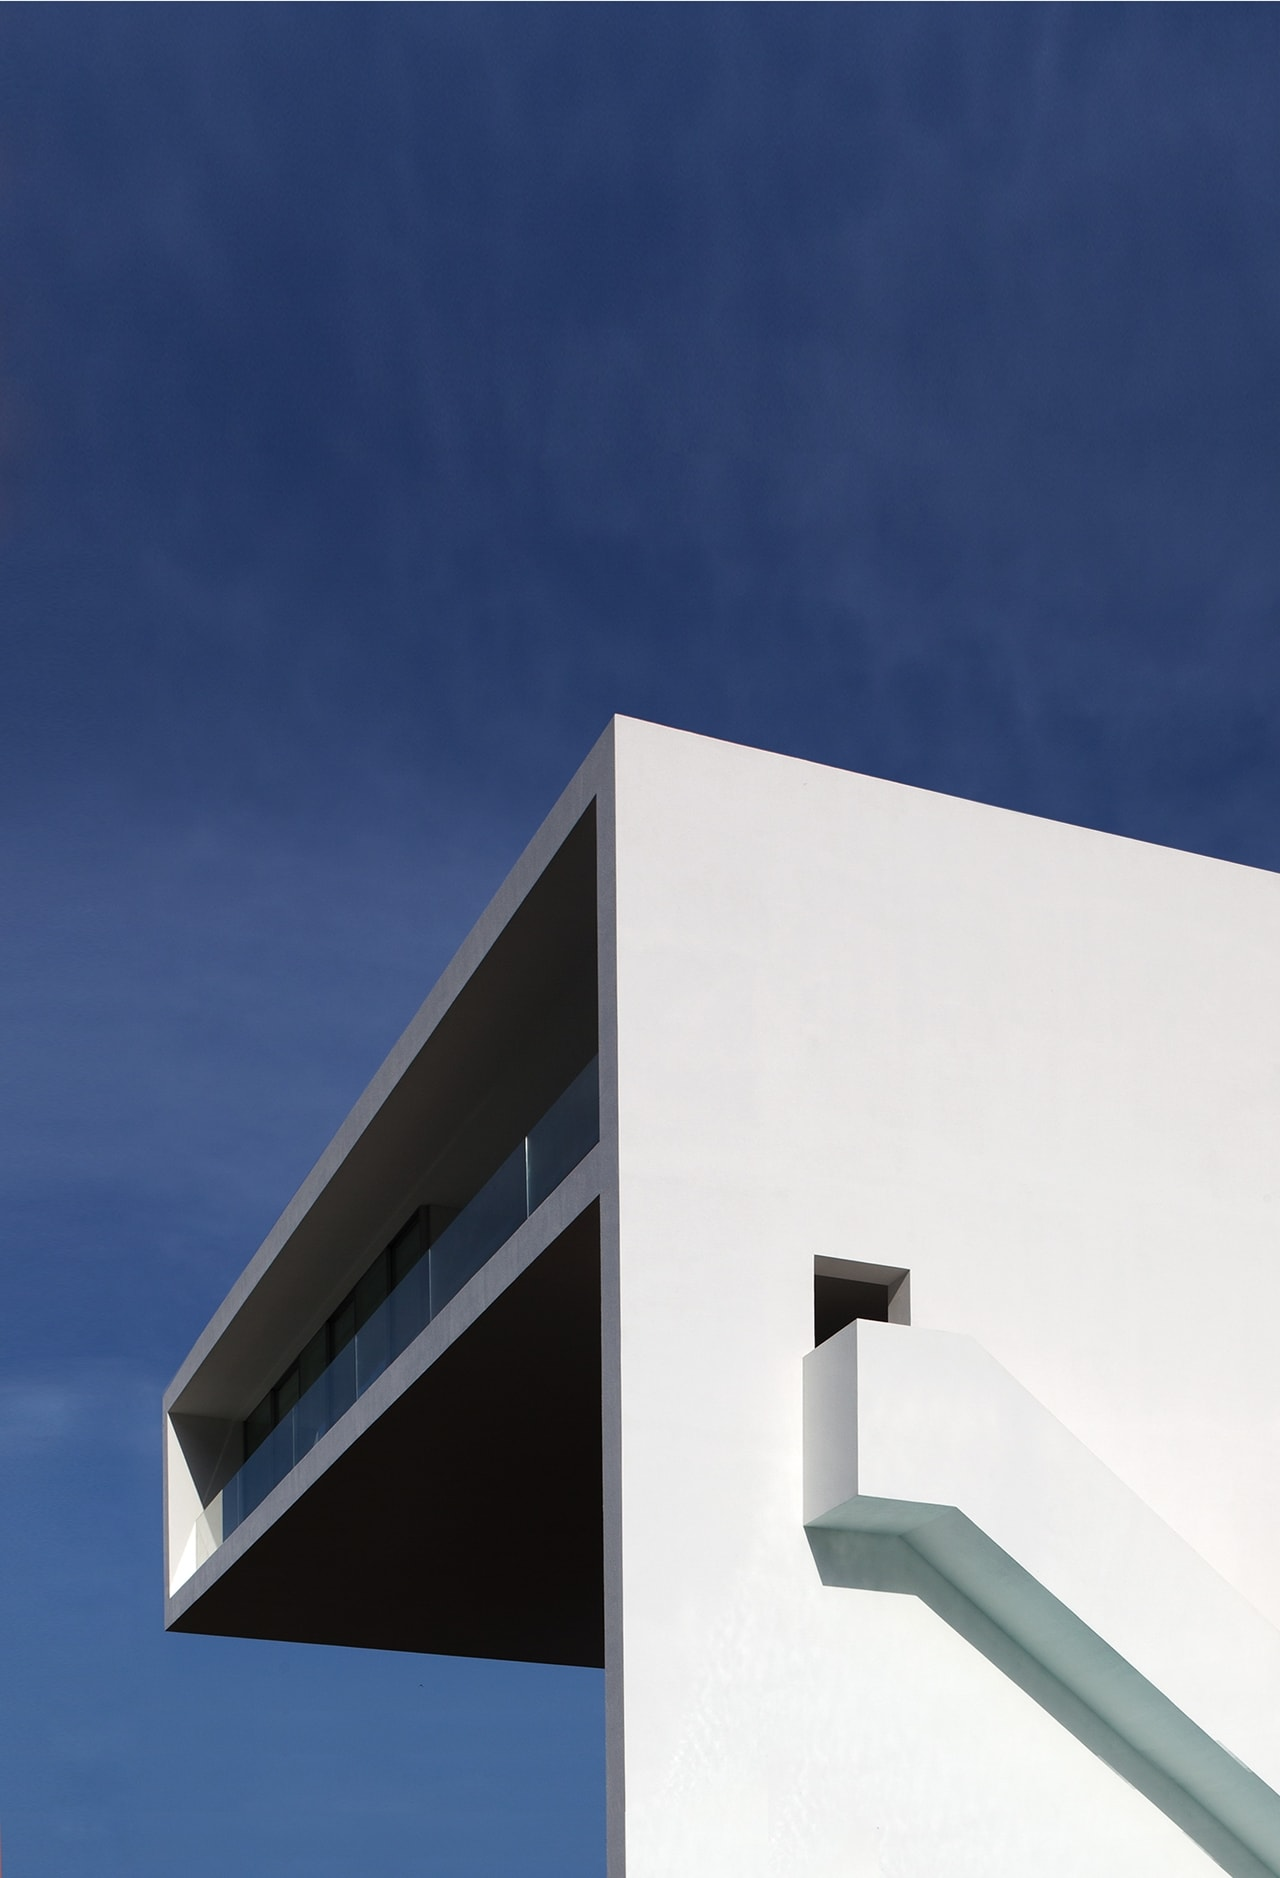 Diego Opazo Minimalist house design of Cliff House by Fran Silvestre architects & Minimalist house design: Breathtaking home on the cliffs of Valencia ...